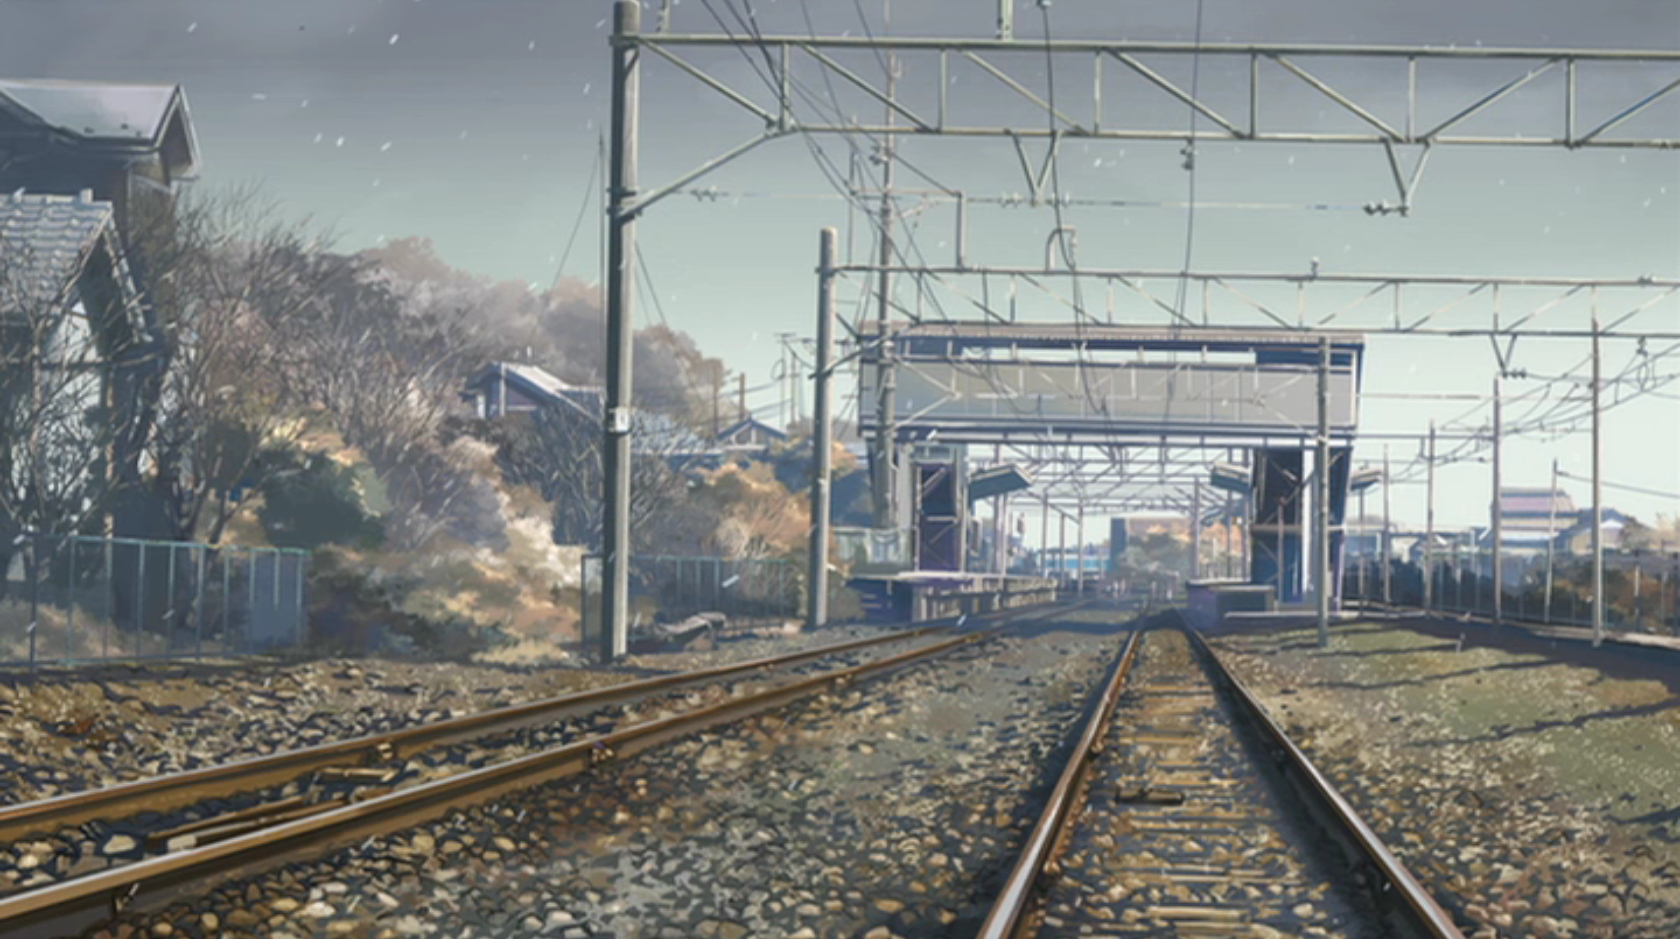 makoto shinkai railroad tracks HD Wallpaper